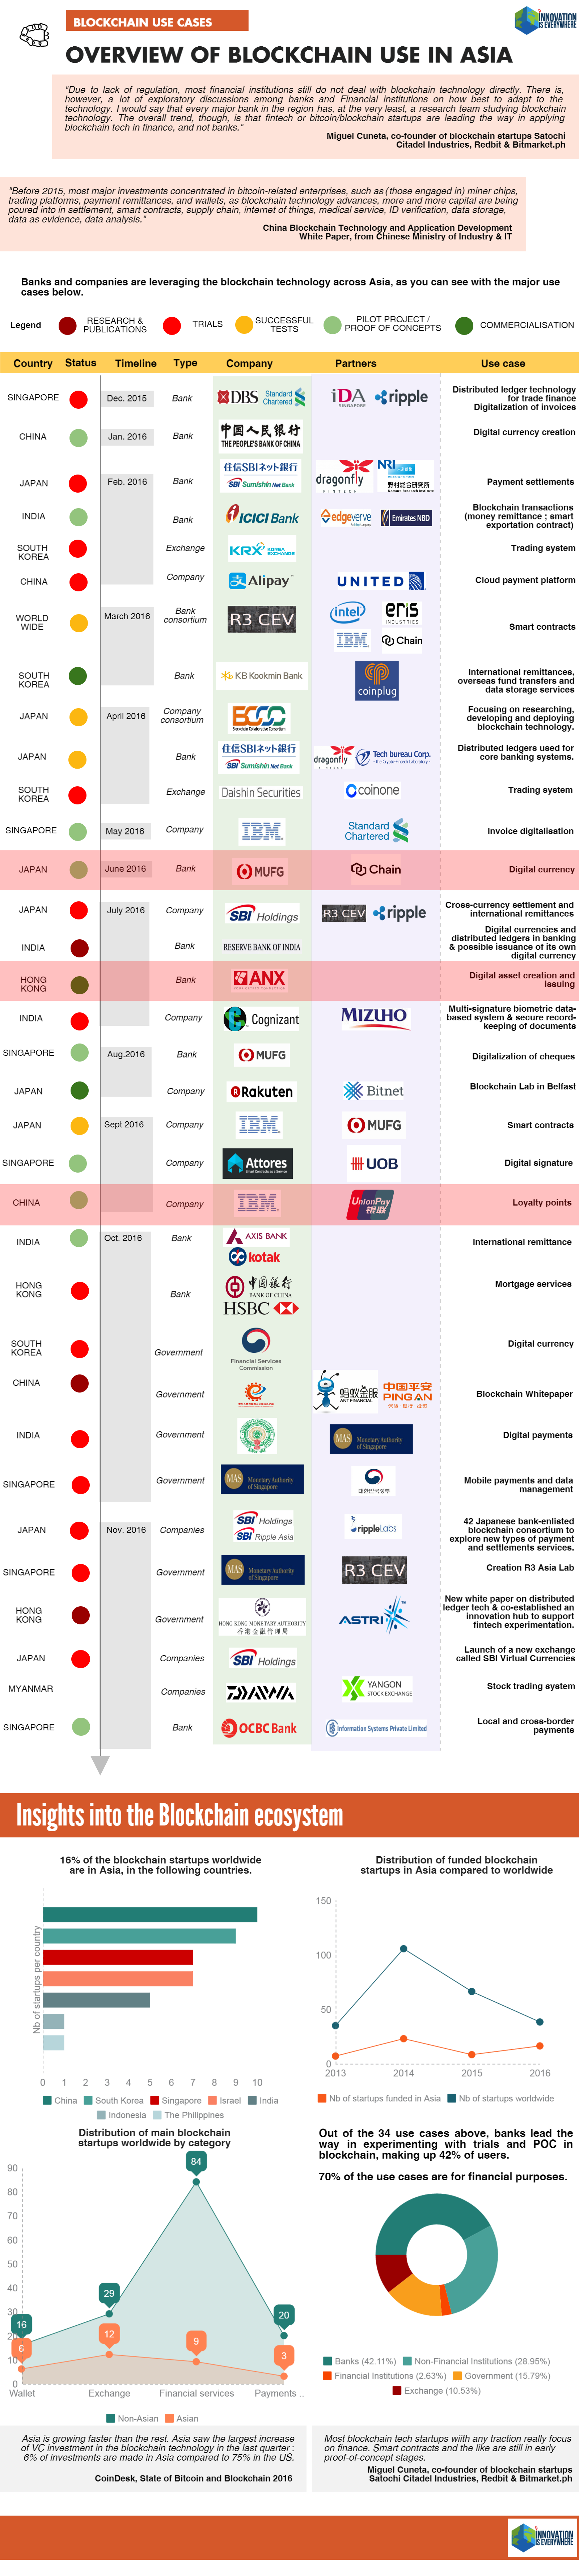 Blockchain's use across Asia with financial institutions such as DBS, KB Kookmin Bank and government bodies from countries like Japan, China and Singapore. The graphic concludes with key statistics on the development of blockchain in the Asia-Pacific.